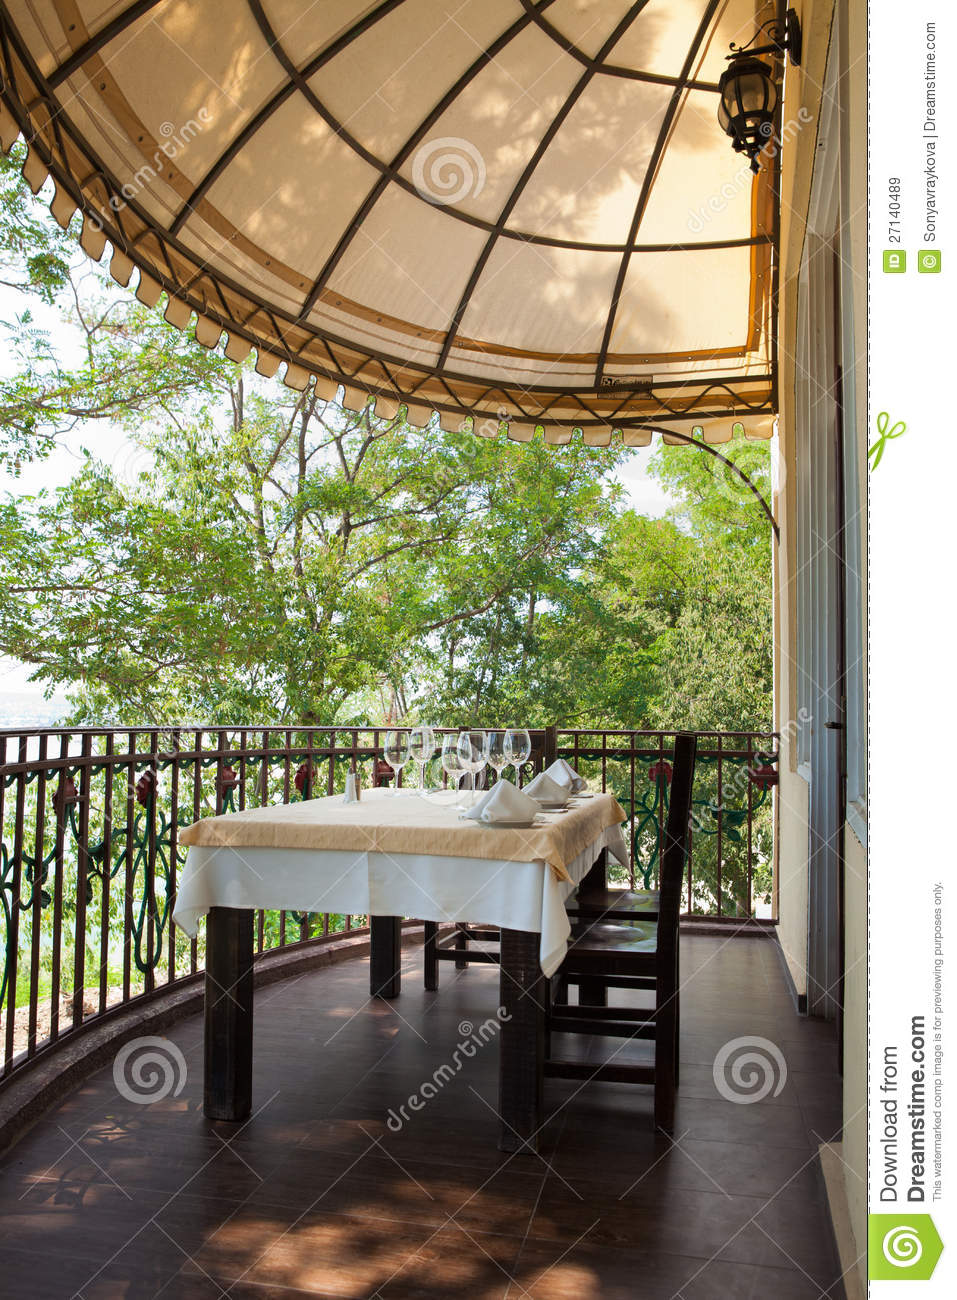 Dining on a terrace royalty free stock images image for Dinner on the terrace